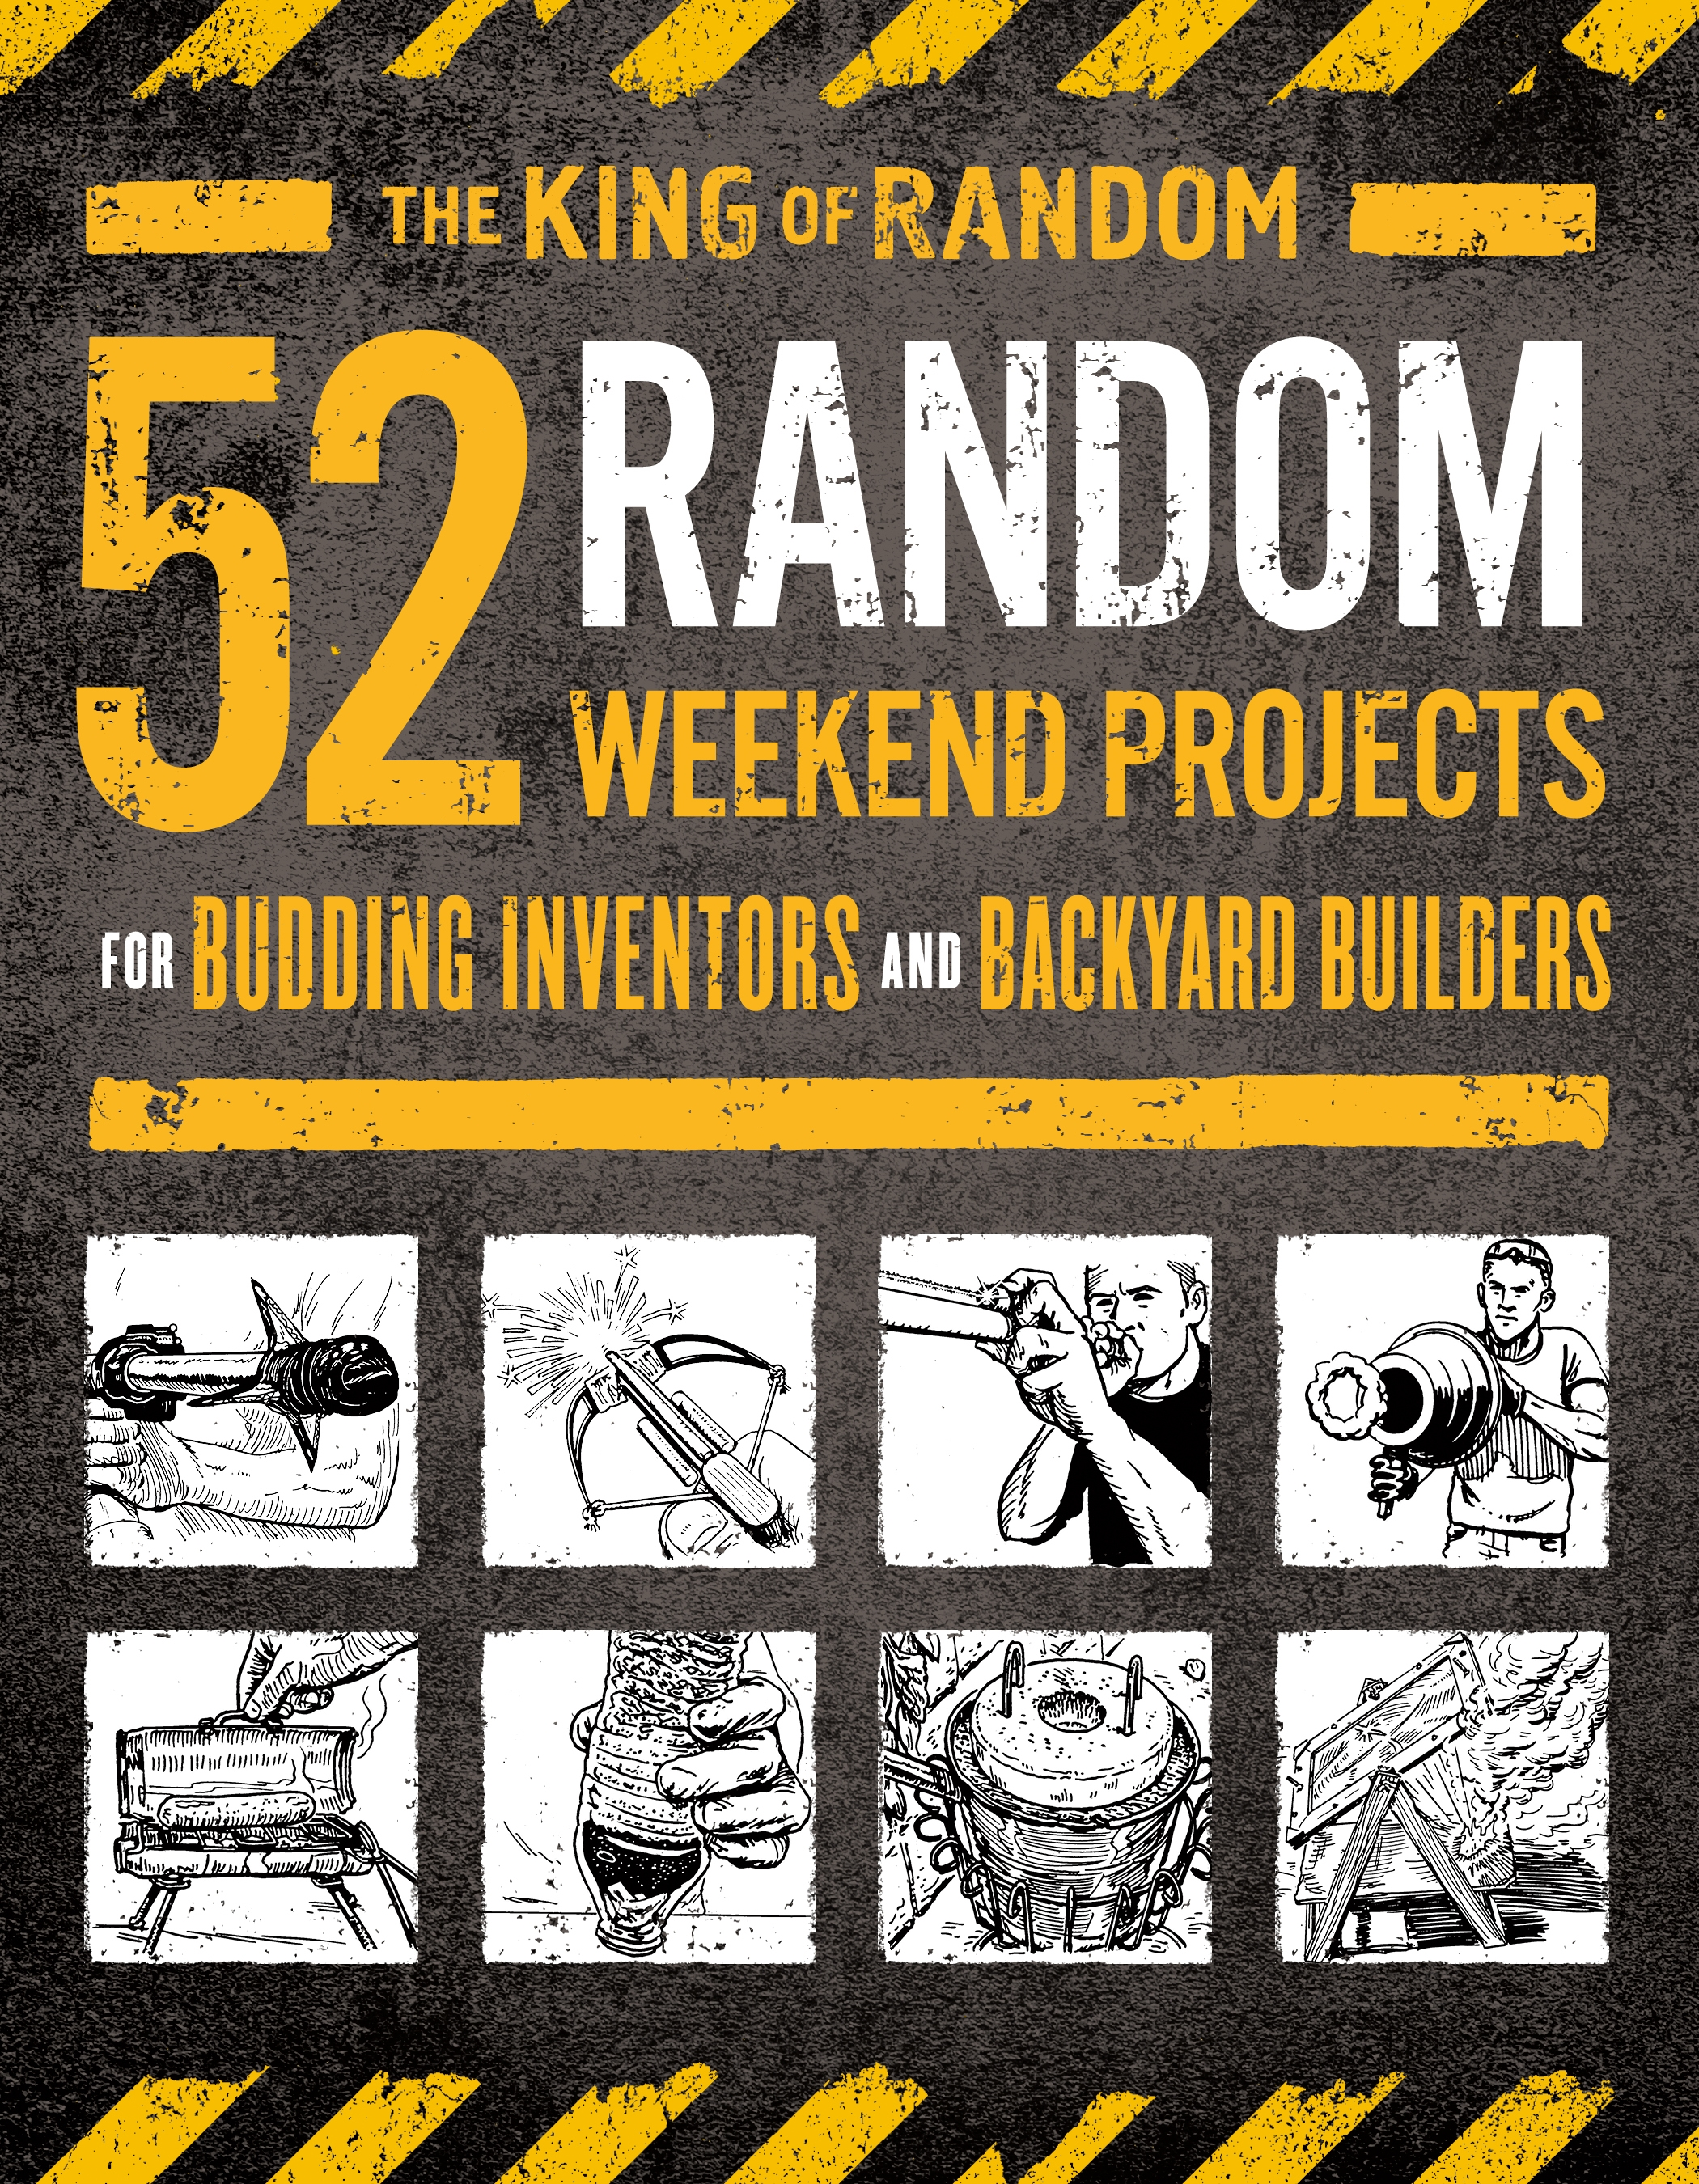 52 Random Weekend Projects For Budding Inventors and Backyard Builders